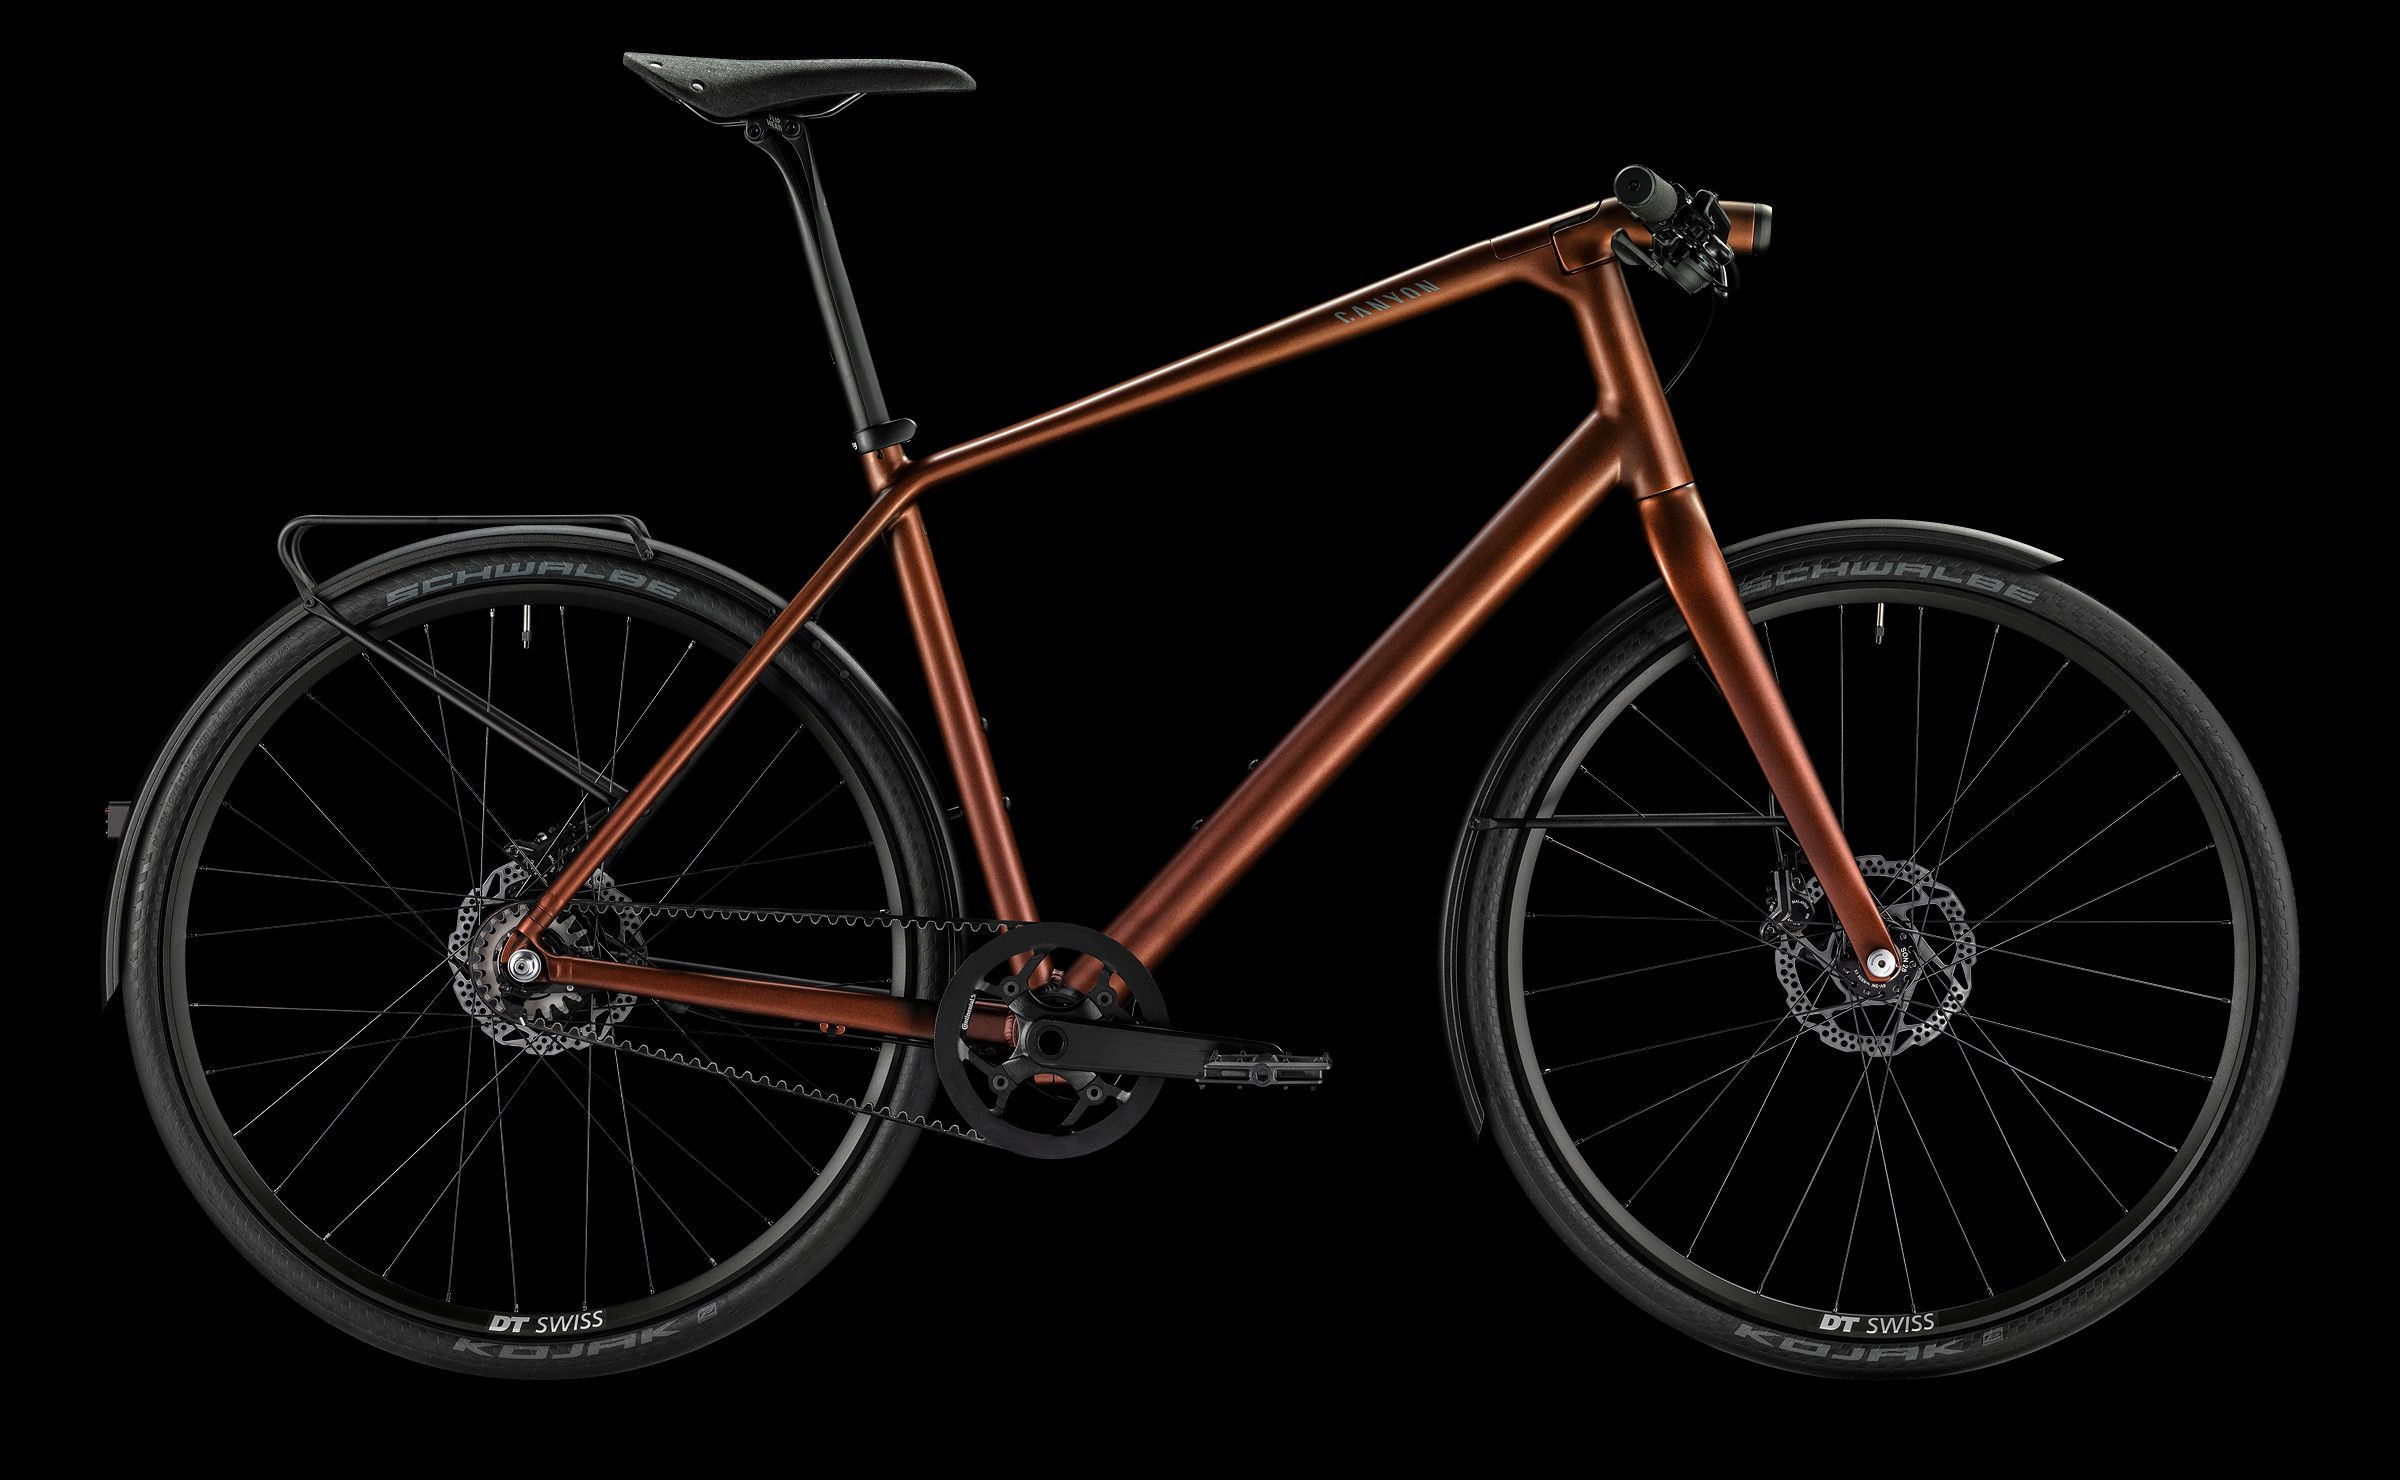 CANYON | COMMUTER 8.0 - A bike with high design and even higher practicality